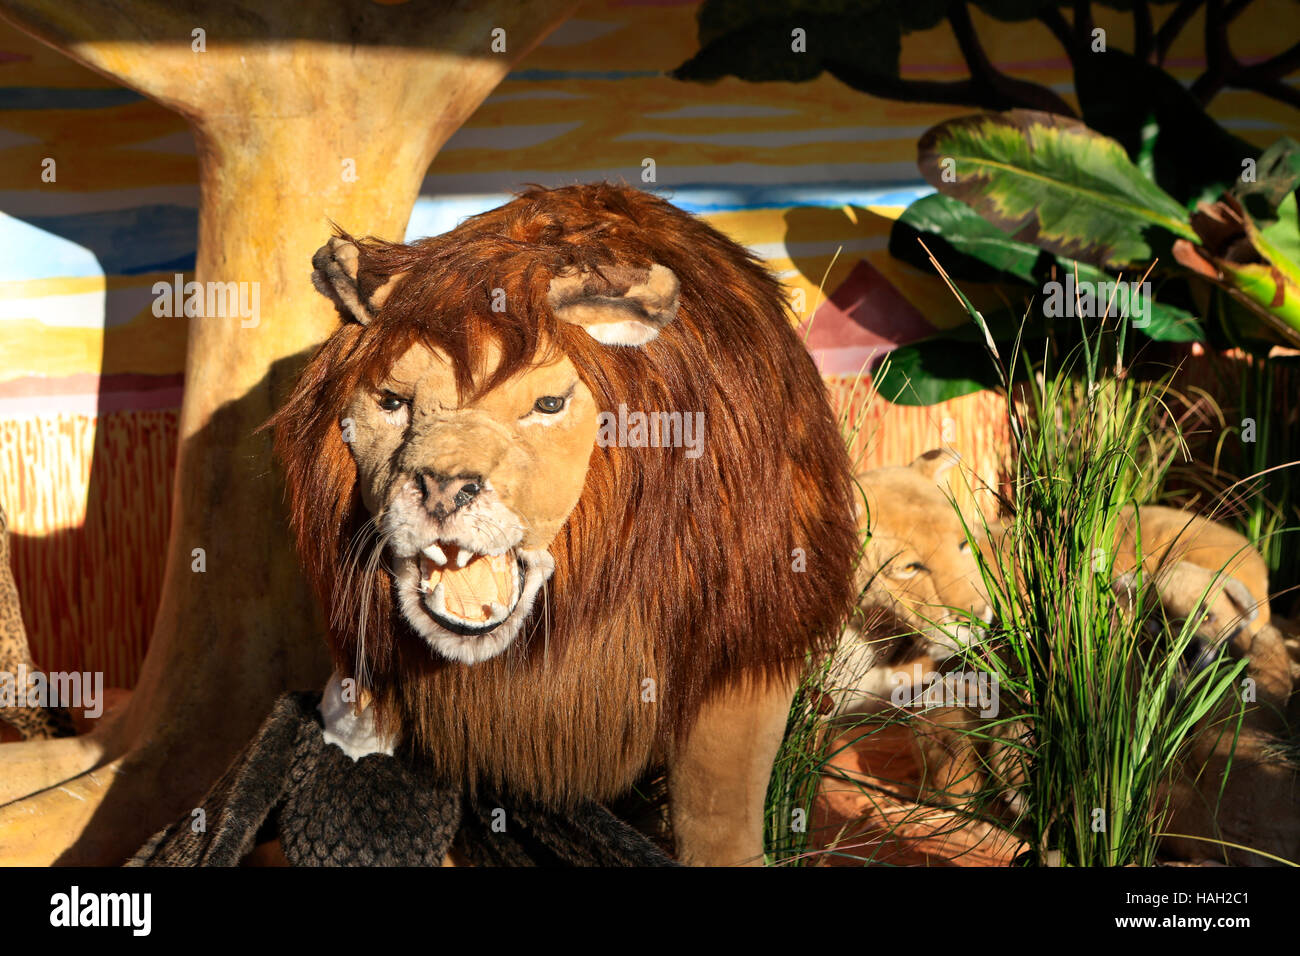 Toy Lions Stock Photos & Toy Lions Stock Images - Alamy